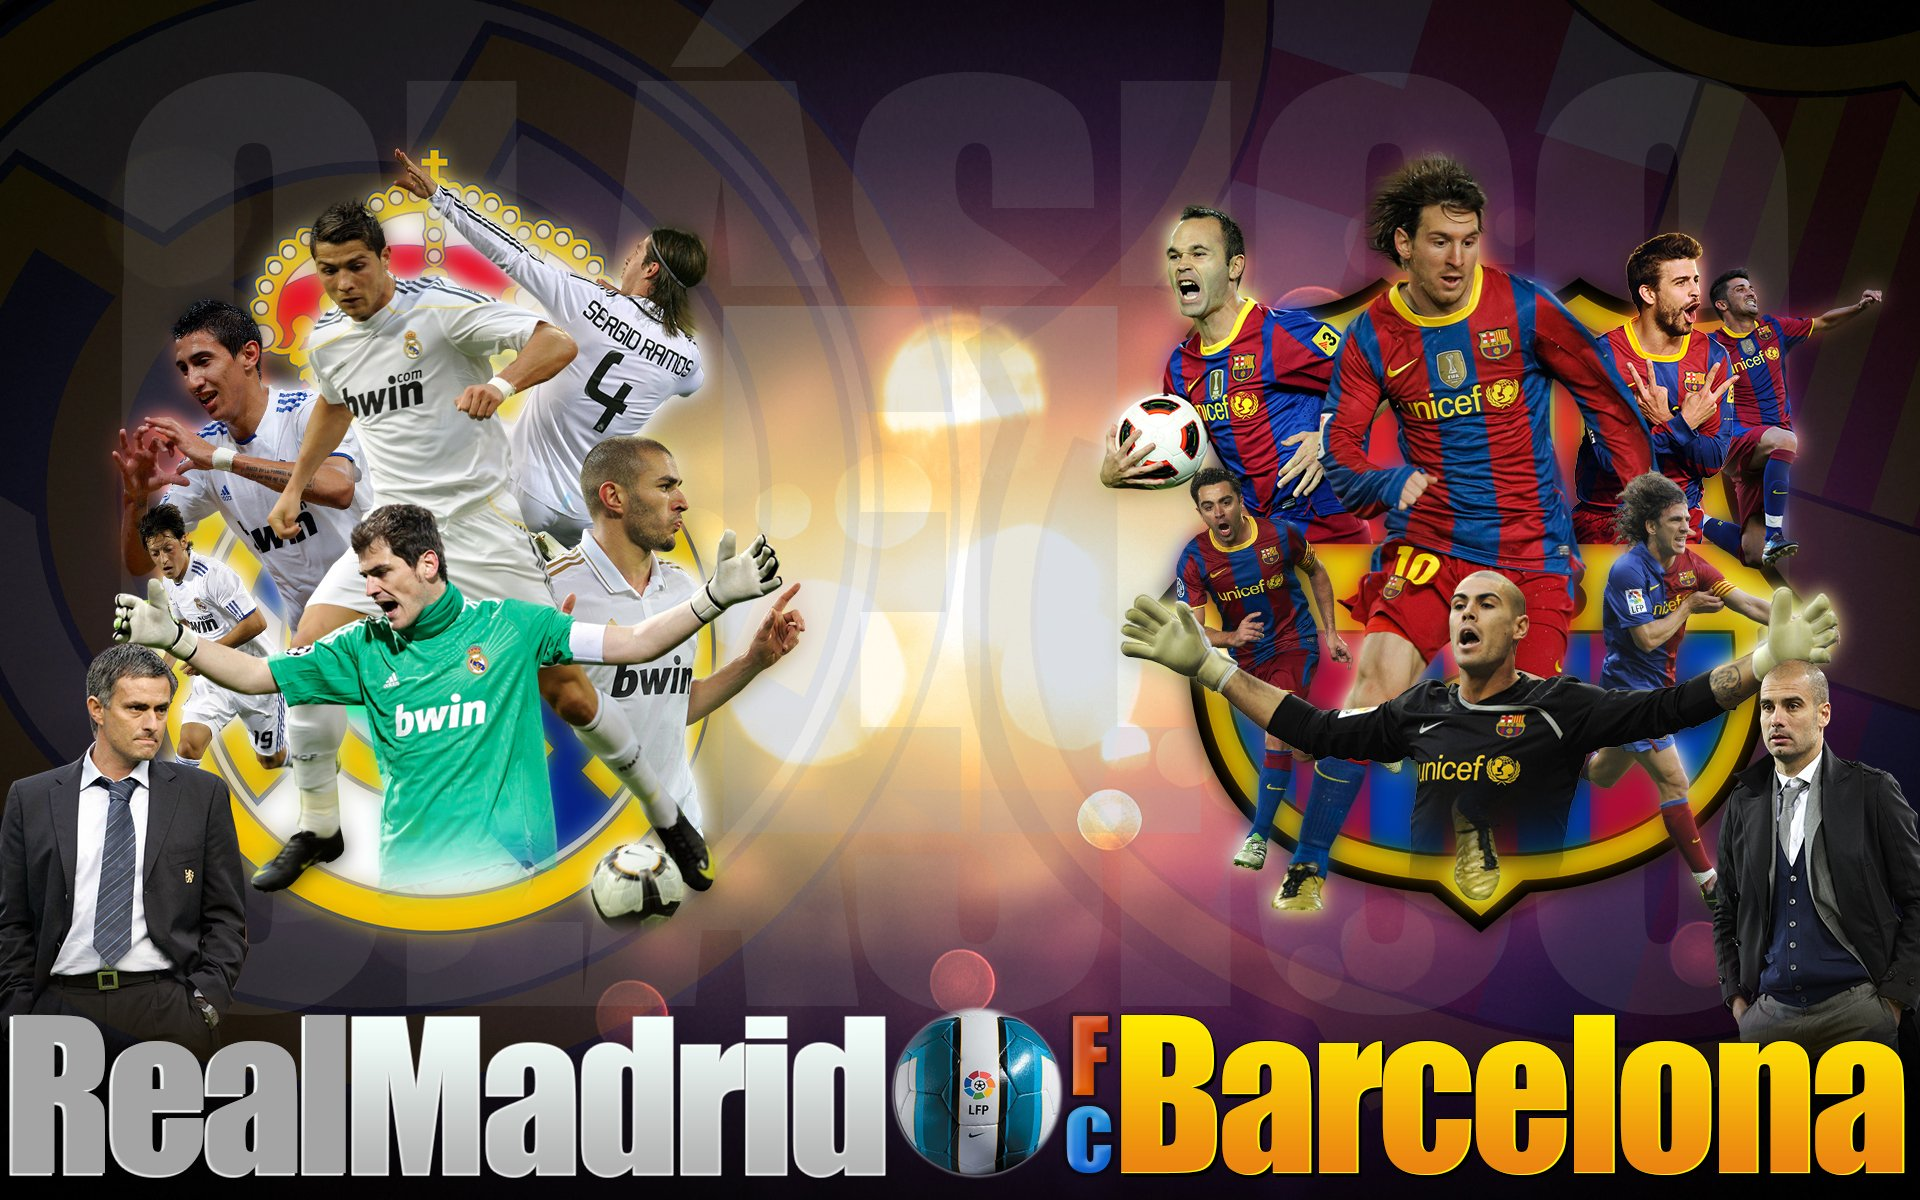 Barcelona-Vs-Real-Madrid-HD-Images-Pics-1920×1080-Real-Madrid-Vs-Barcelona-wallpaper-wpc9202761